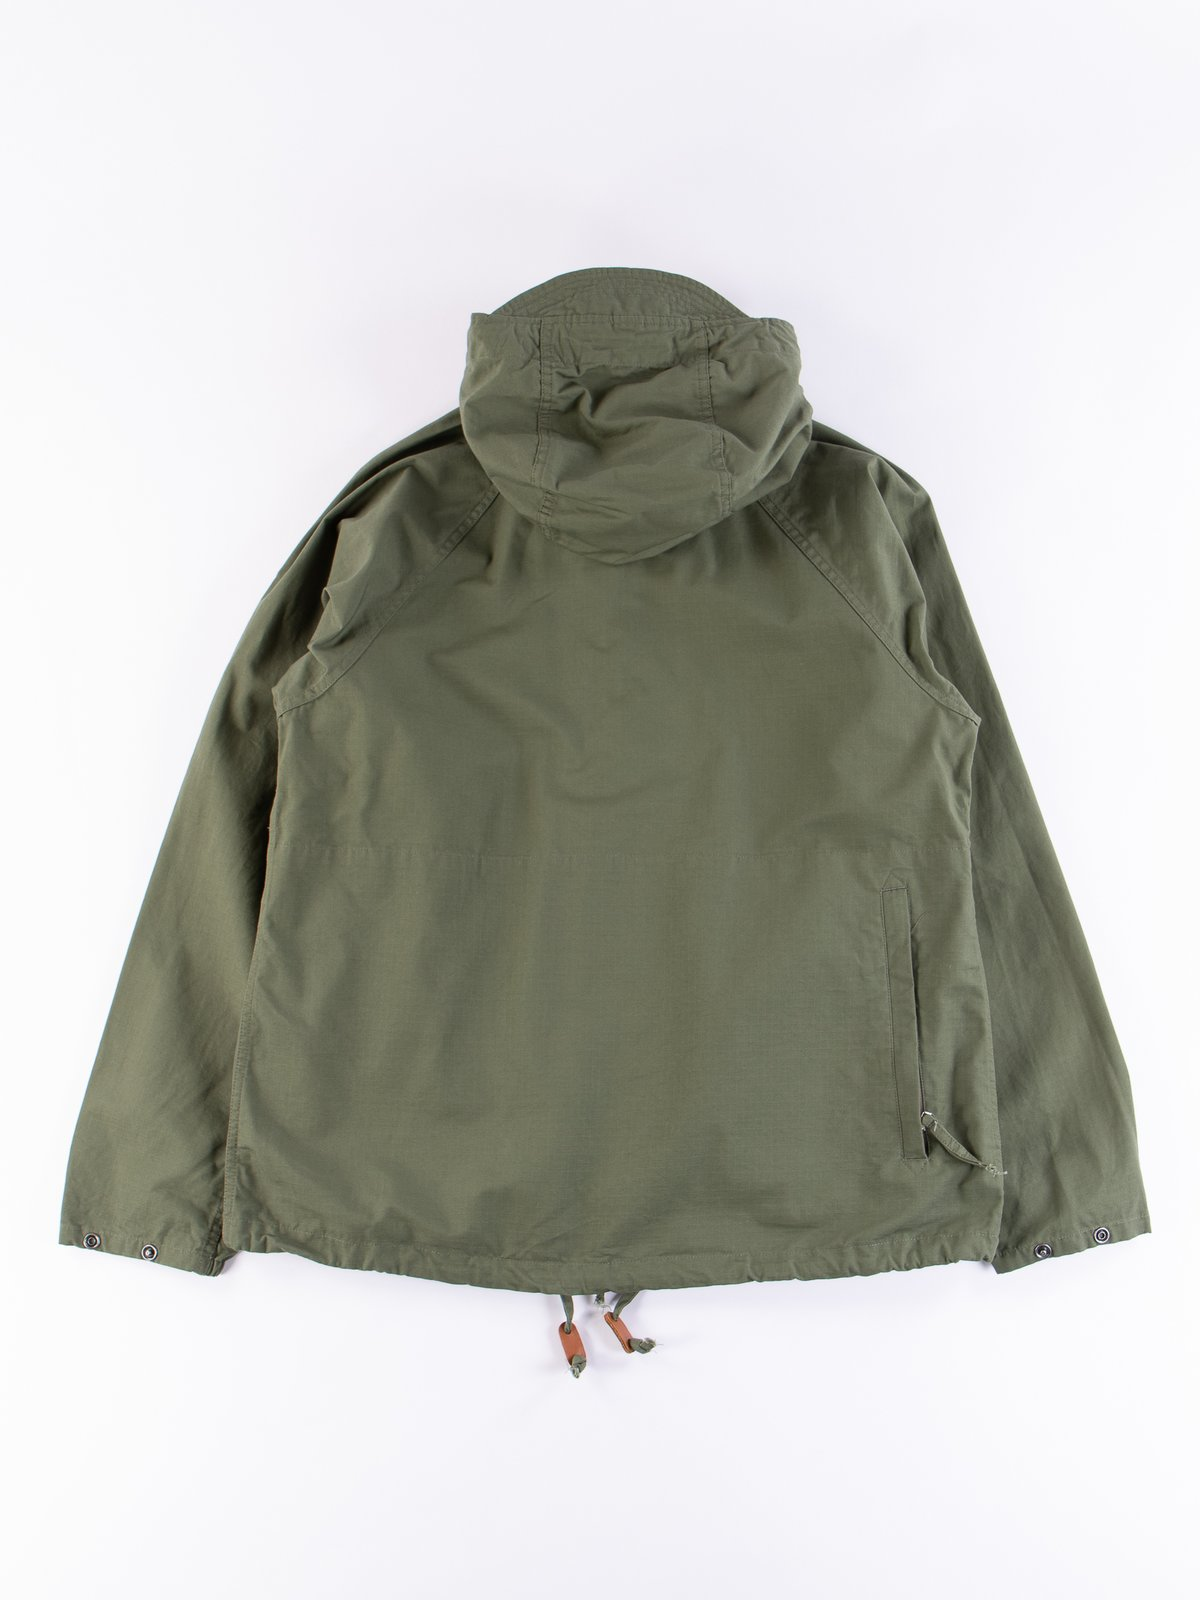 Olive Cotton Ripstop Atlantic Parka - Image 5